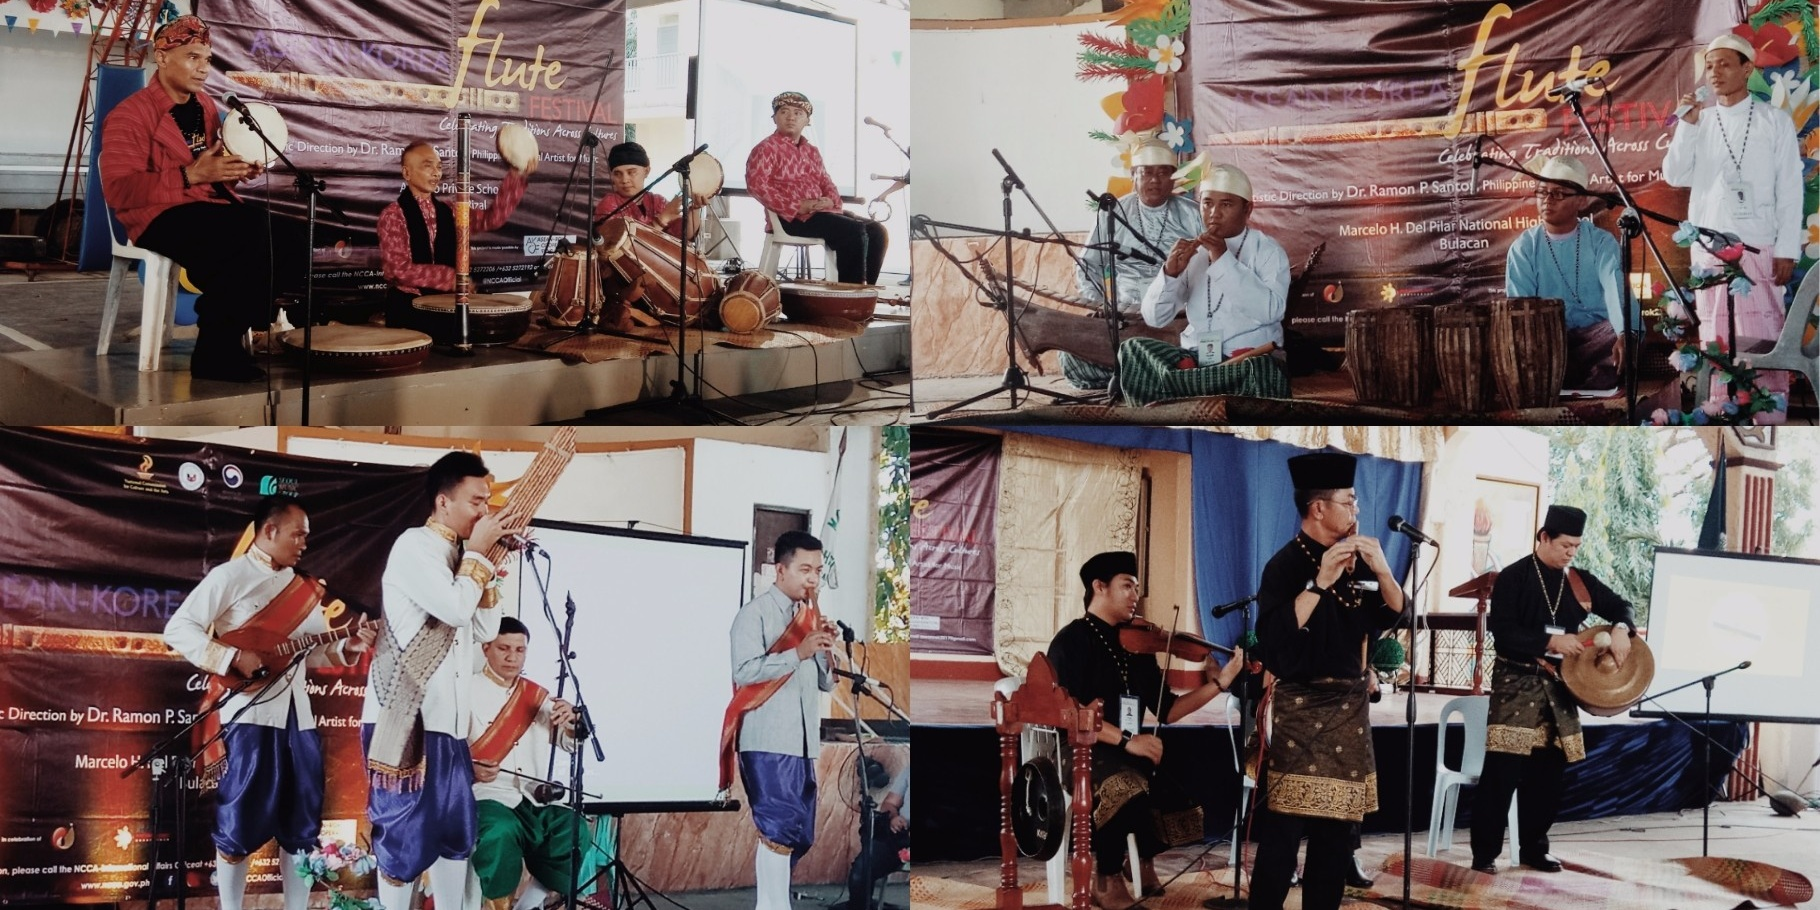 ASEAN-Korea Flute Festival centers on Traditional Music Education for the youth